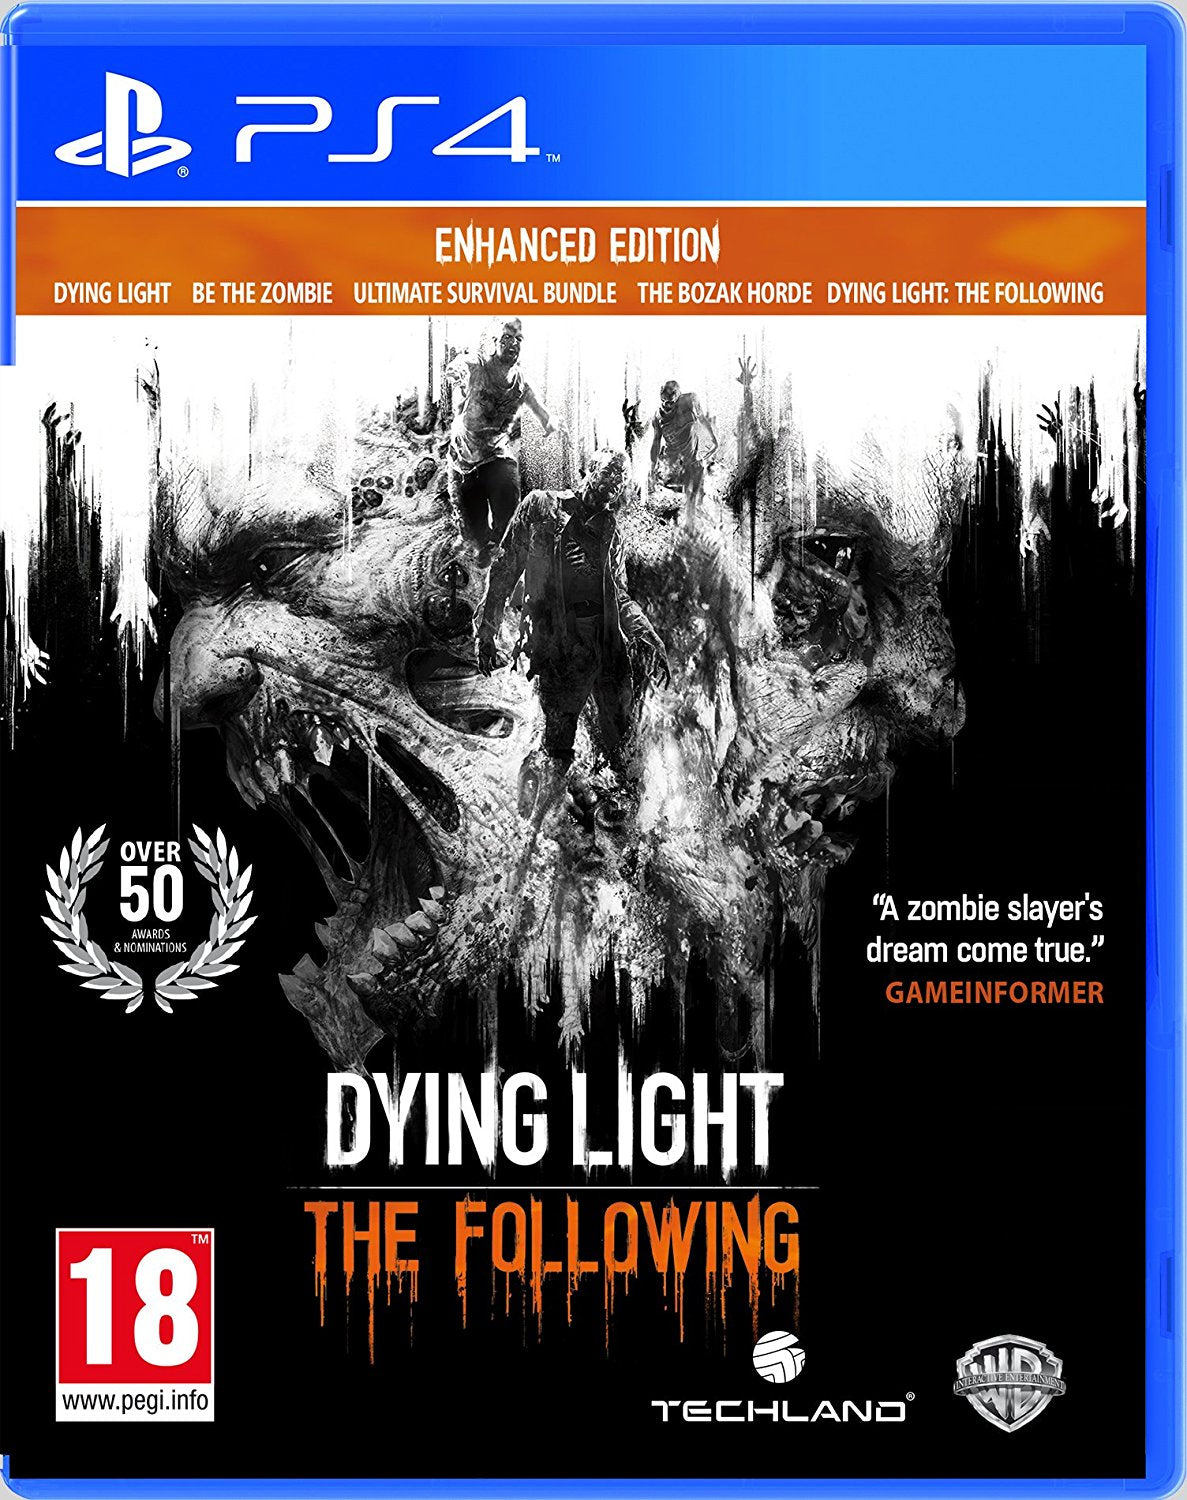 Dying Light: The Following Enhanced Edition PS4, PS4, DVDMEGASTORE, DVDMEGASTORE